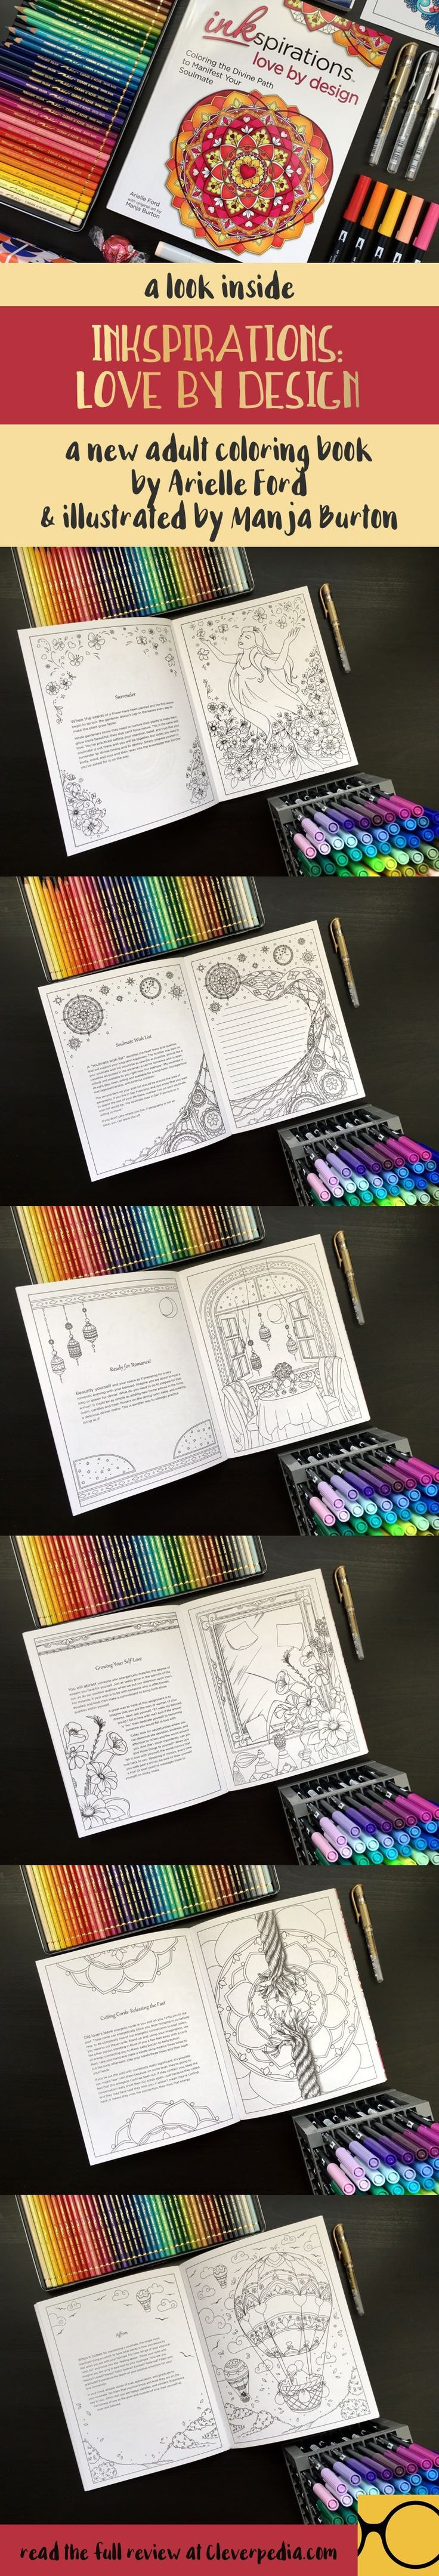 The coloring book quinn review - A Look Inside Inkspirations Love By Design A New Coloring Book To Help You